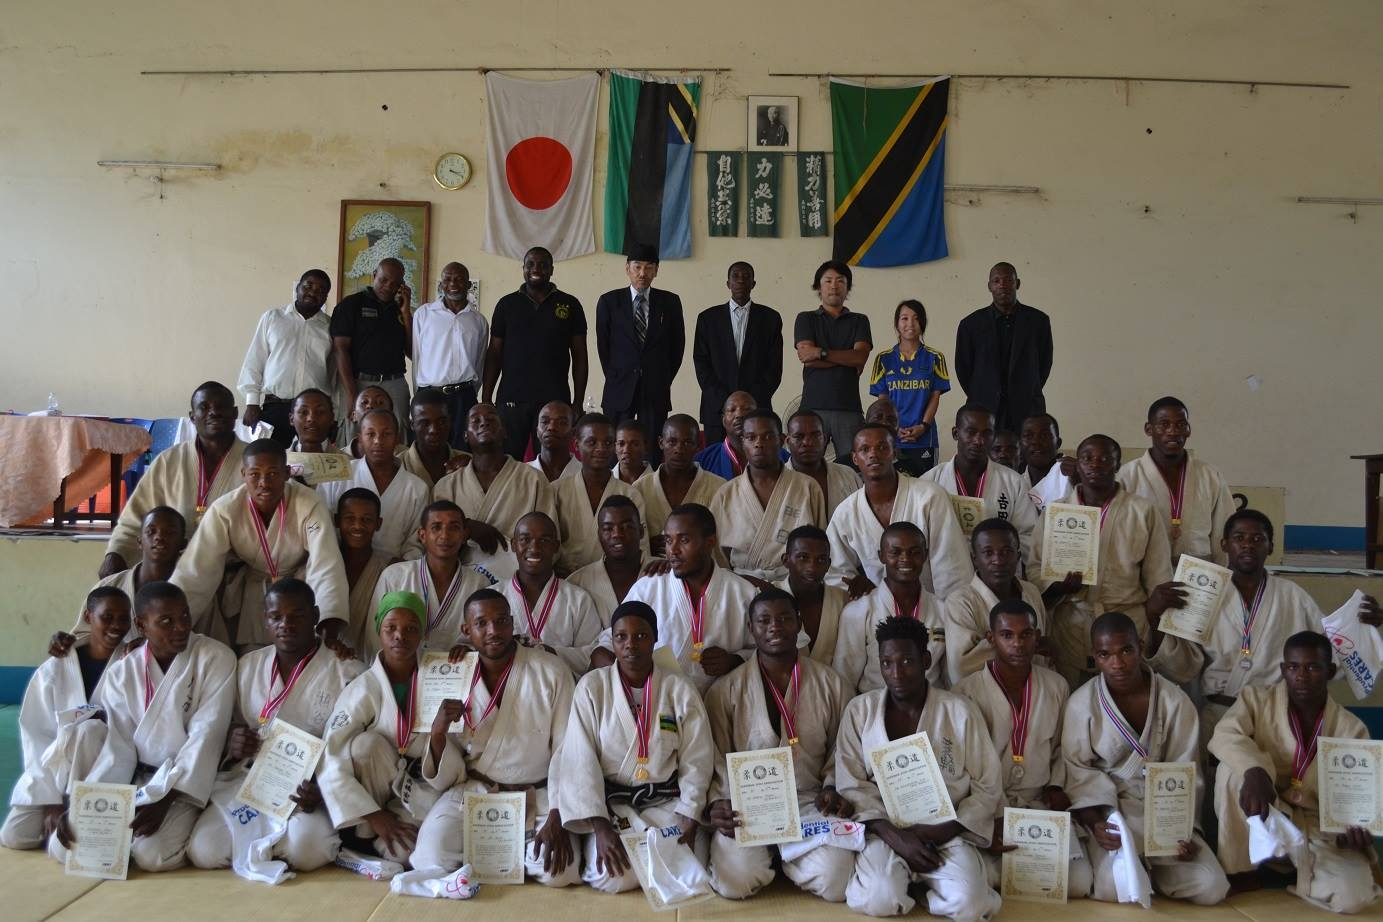 ZANZIBAR WEGHT CATEGORY JUDO CHAMPIONSHIP2018~ザンジバル柔道選手権大会2018_a0088841_10362779.jpg